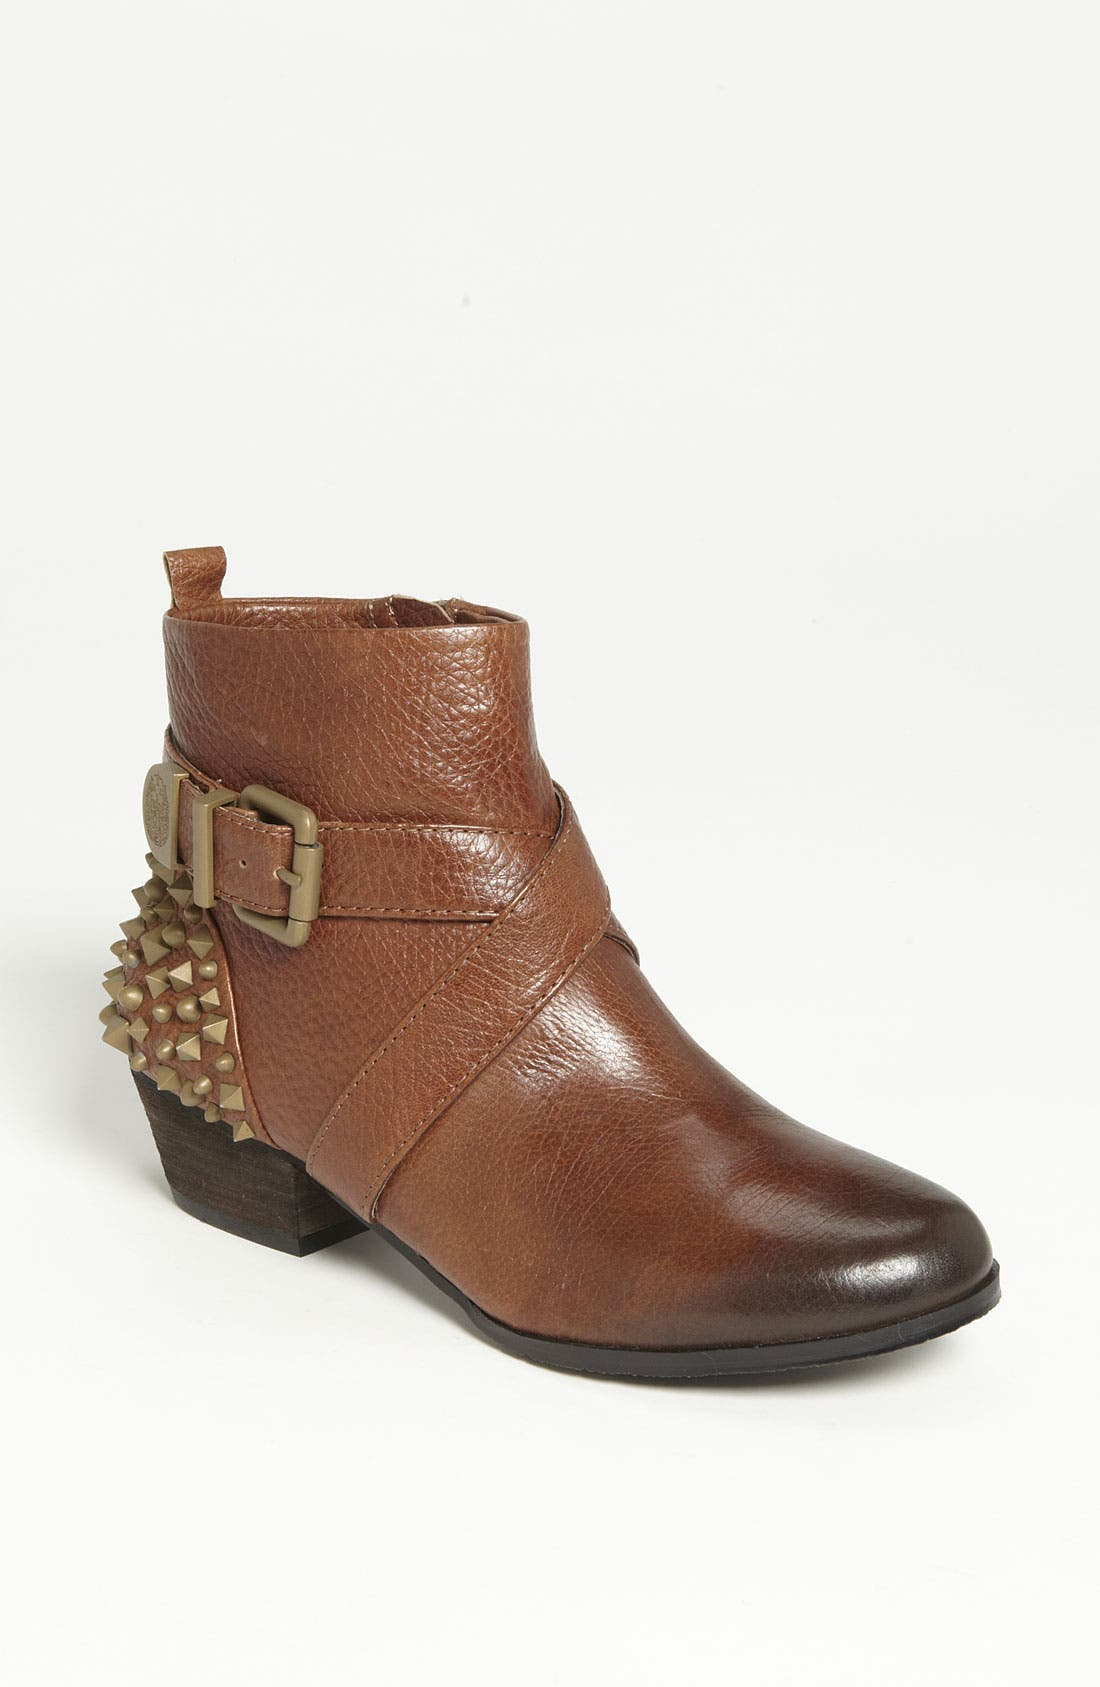 Alternate Image 1 Selected - Vince Camuto 'Marcin' Bootie